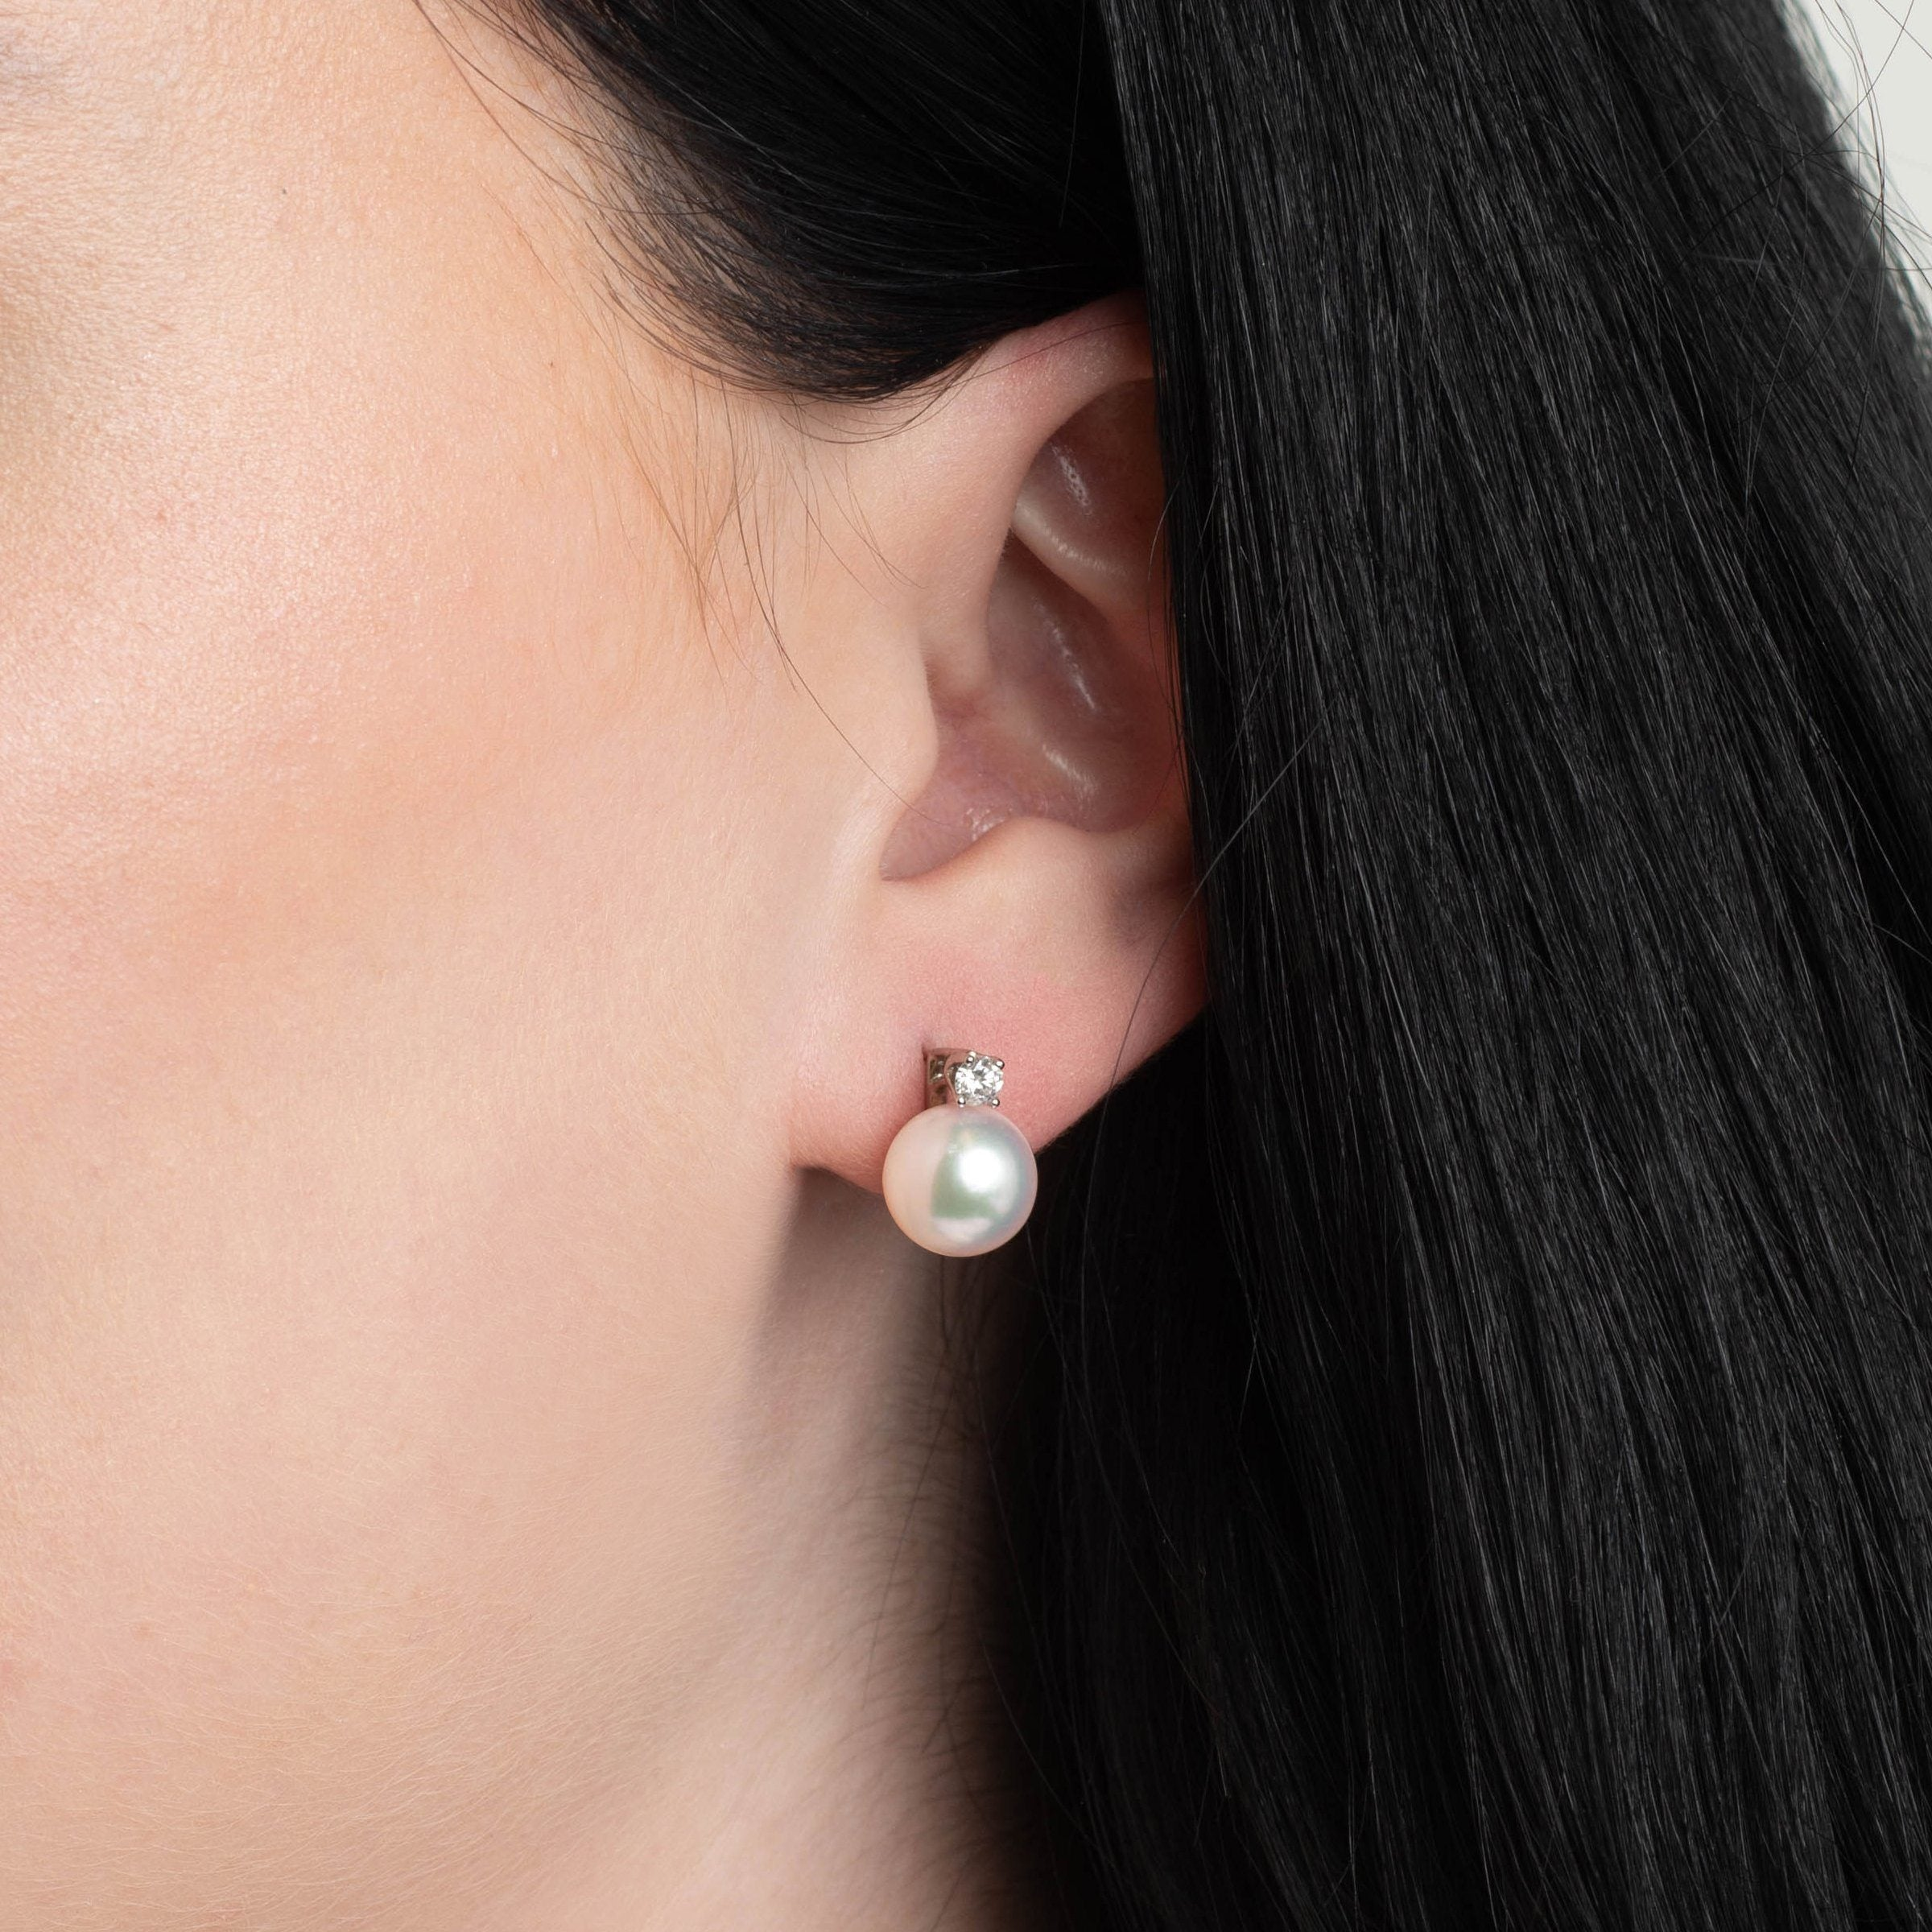 Starlight Collection 9.0-9.5 mm Natural White Hanadama Pearl and Diamond Stud Earrings